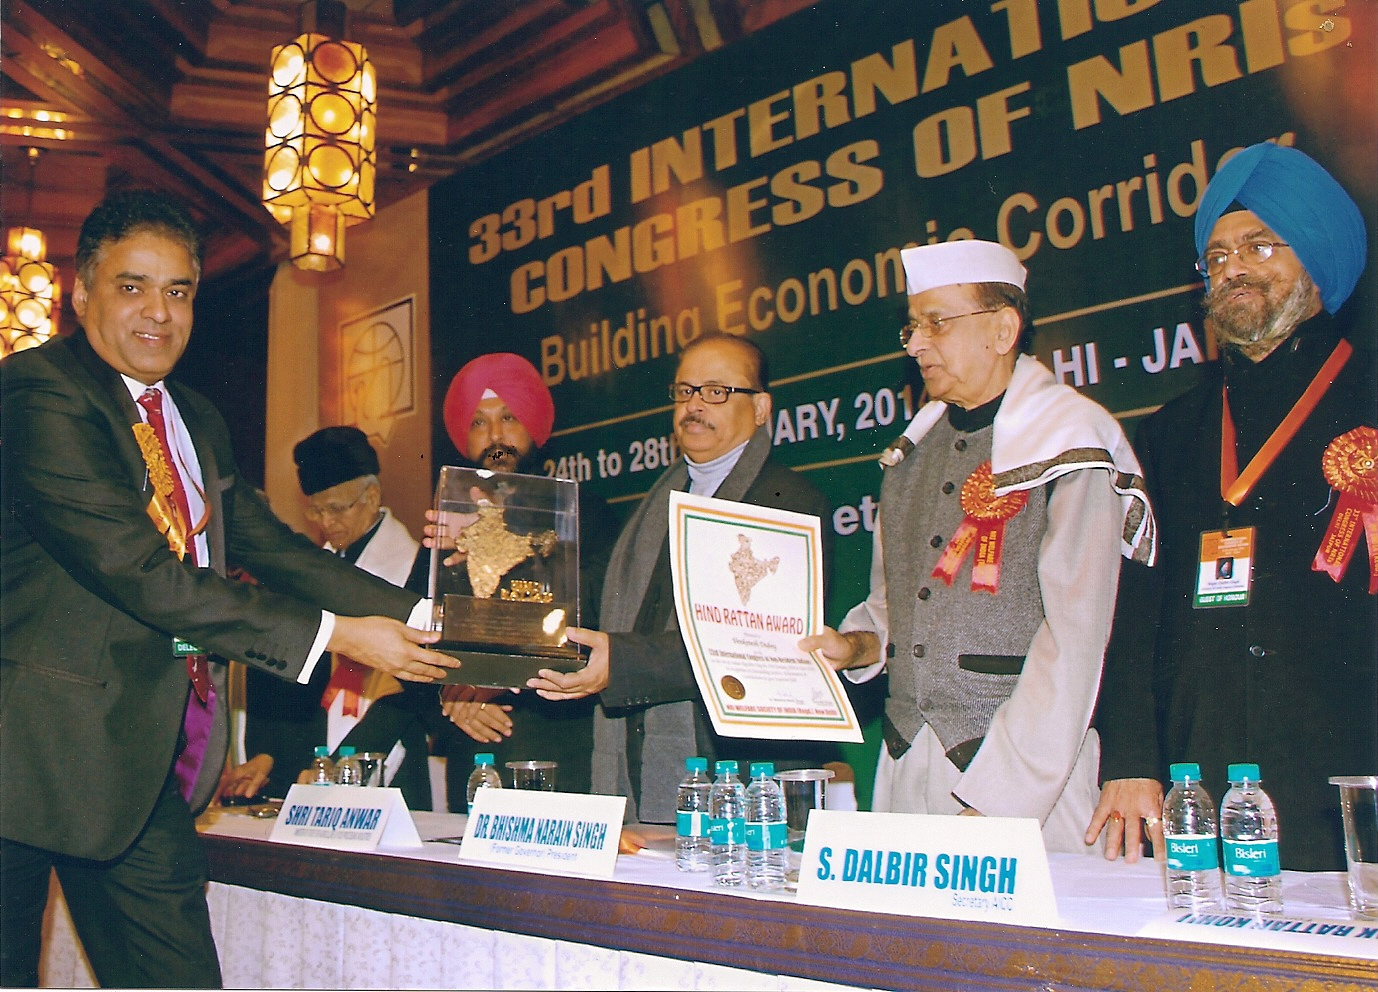 Dr Dubey receiving the Hind Rattan Award